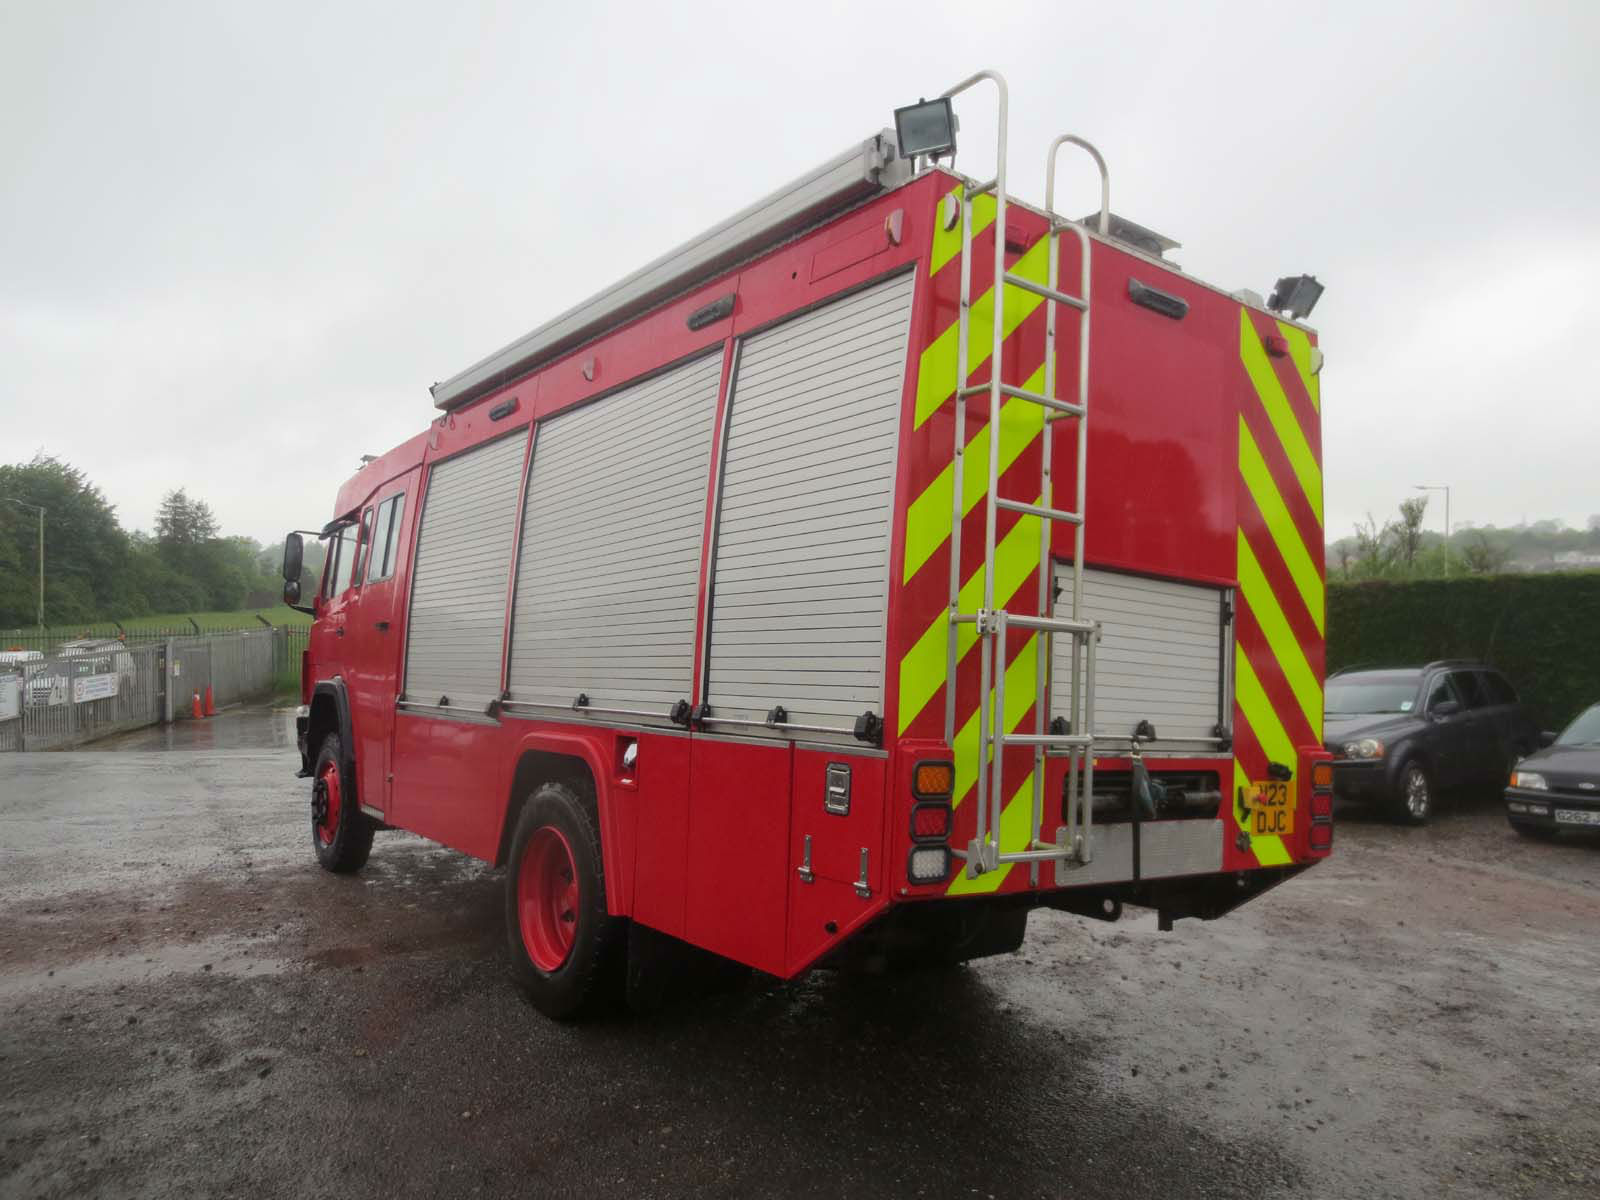 Mercedes 1120 4x4 Incident Response Vehicle to Halifax, Canada